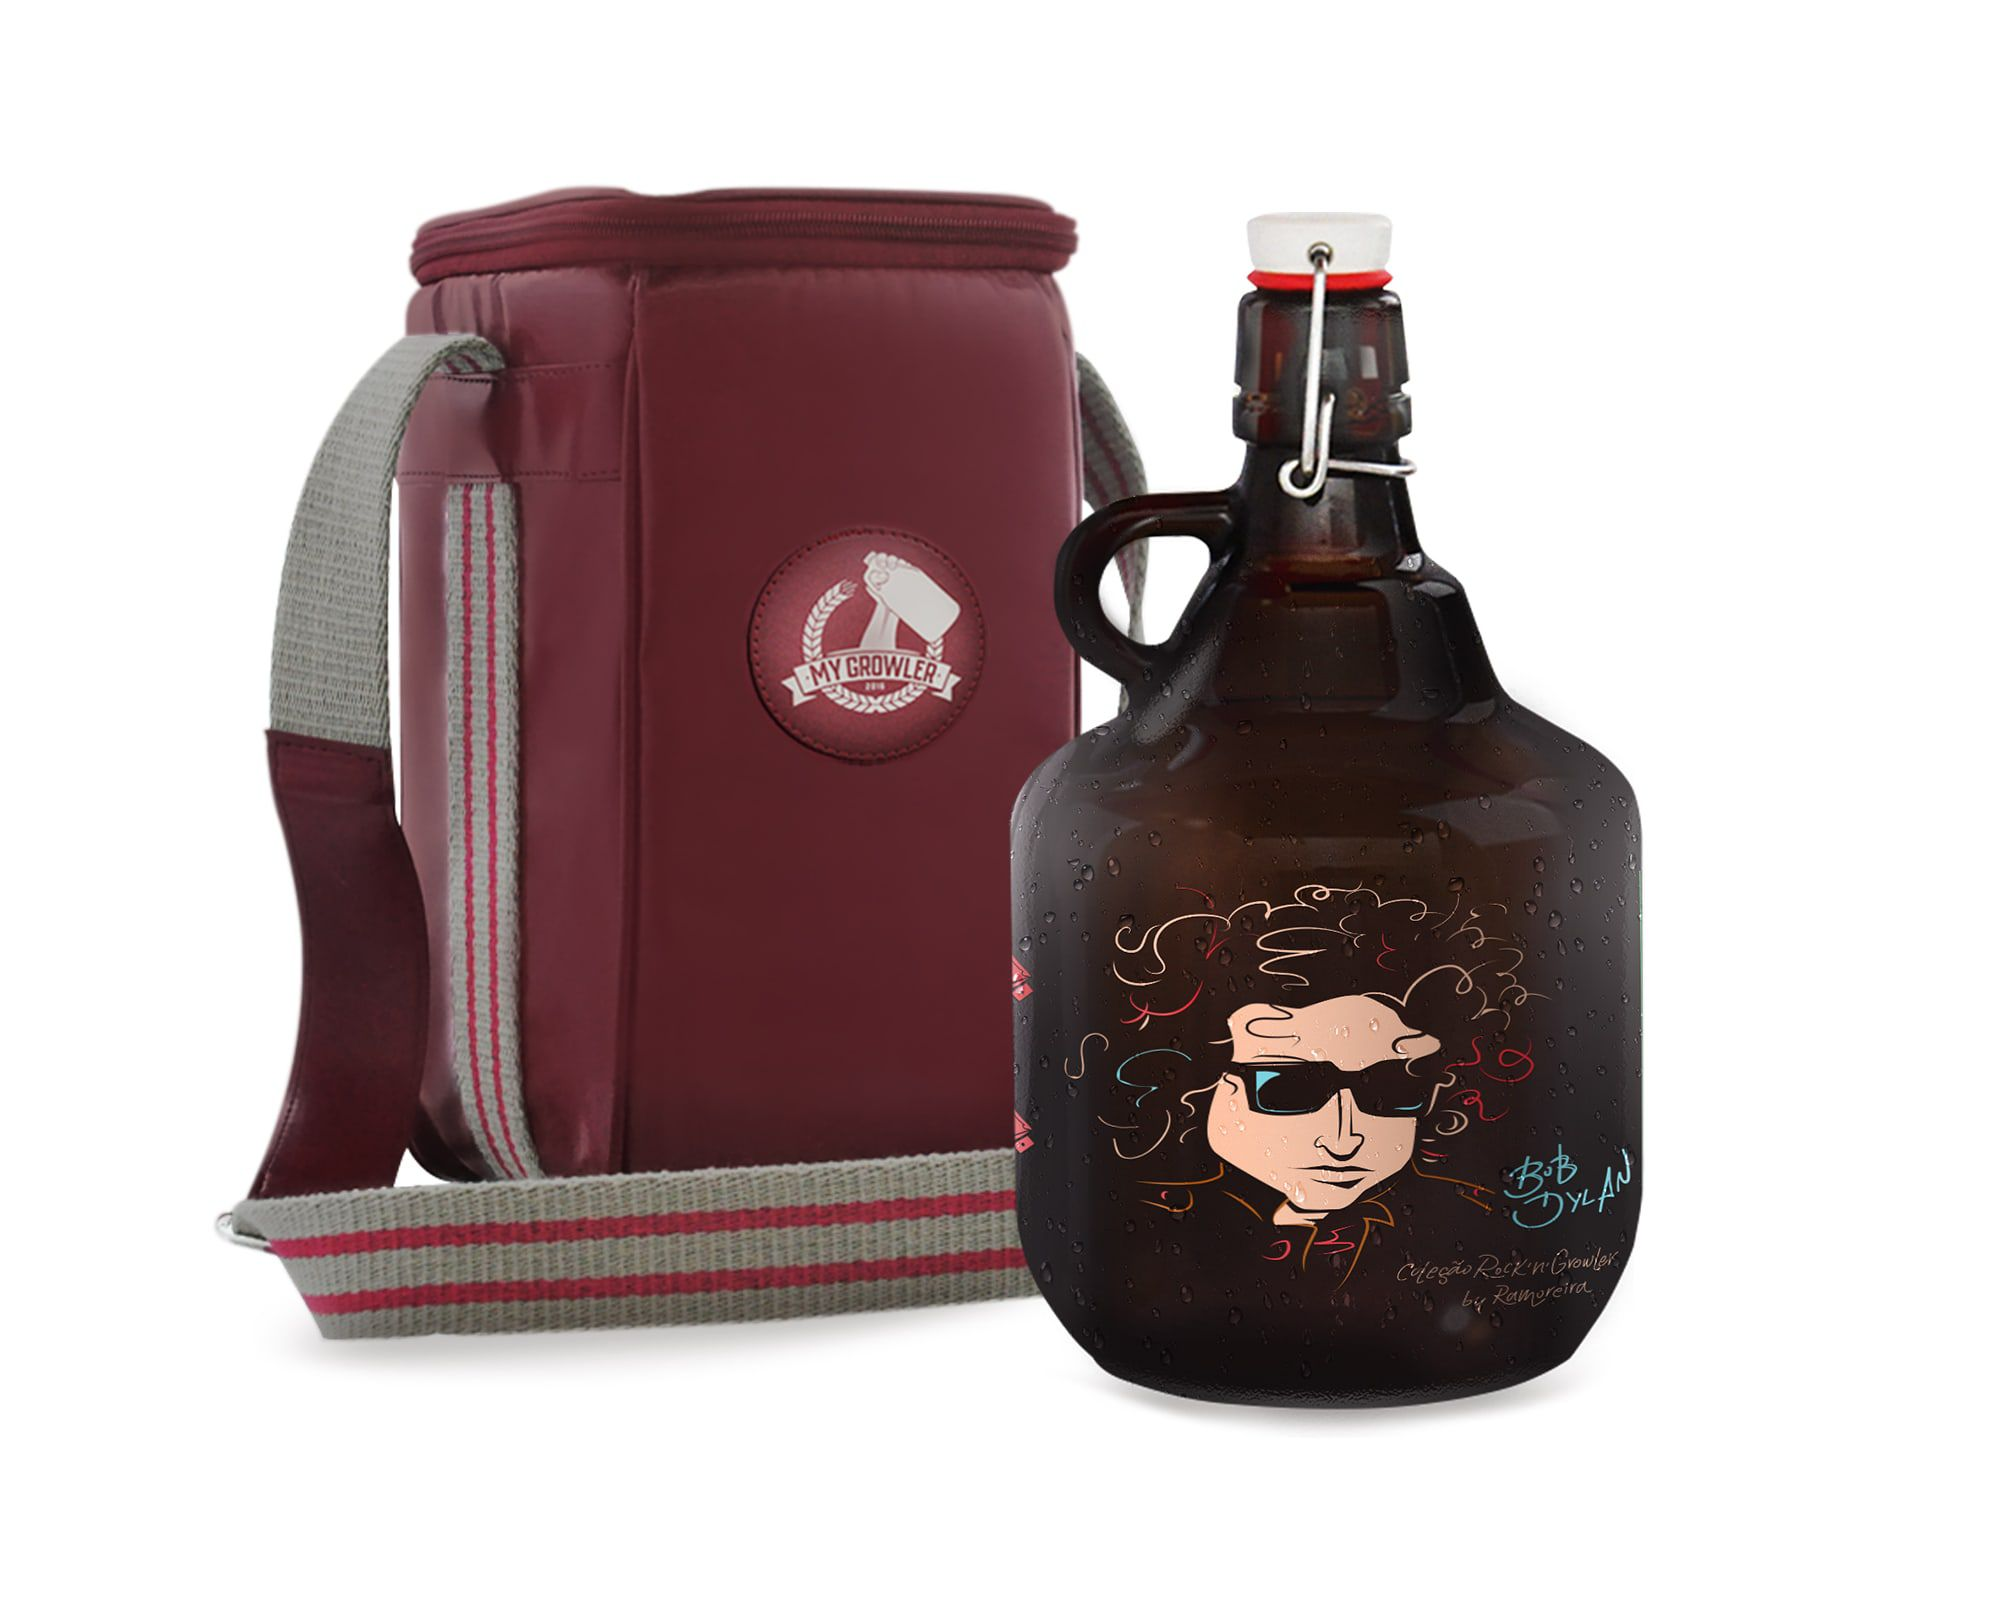 KIT TRAVEL #1: Grand Growler 2l Bob Dylan + Growler Bag Travel 1 growler Vermelho